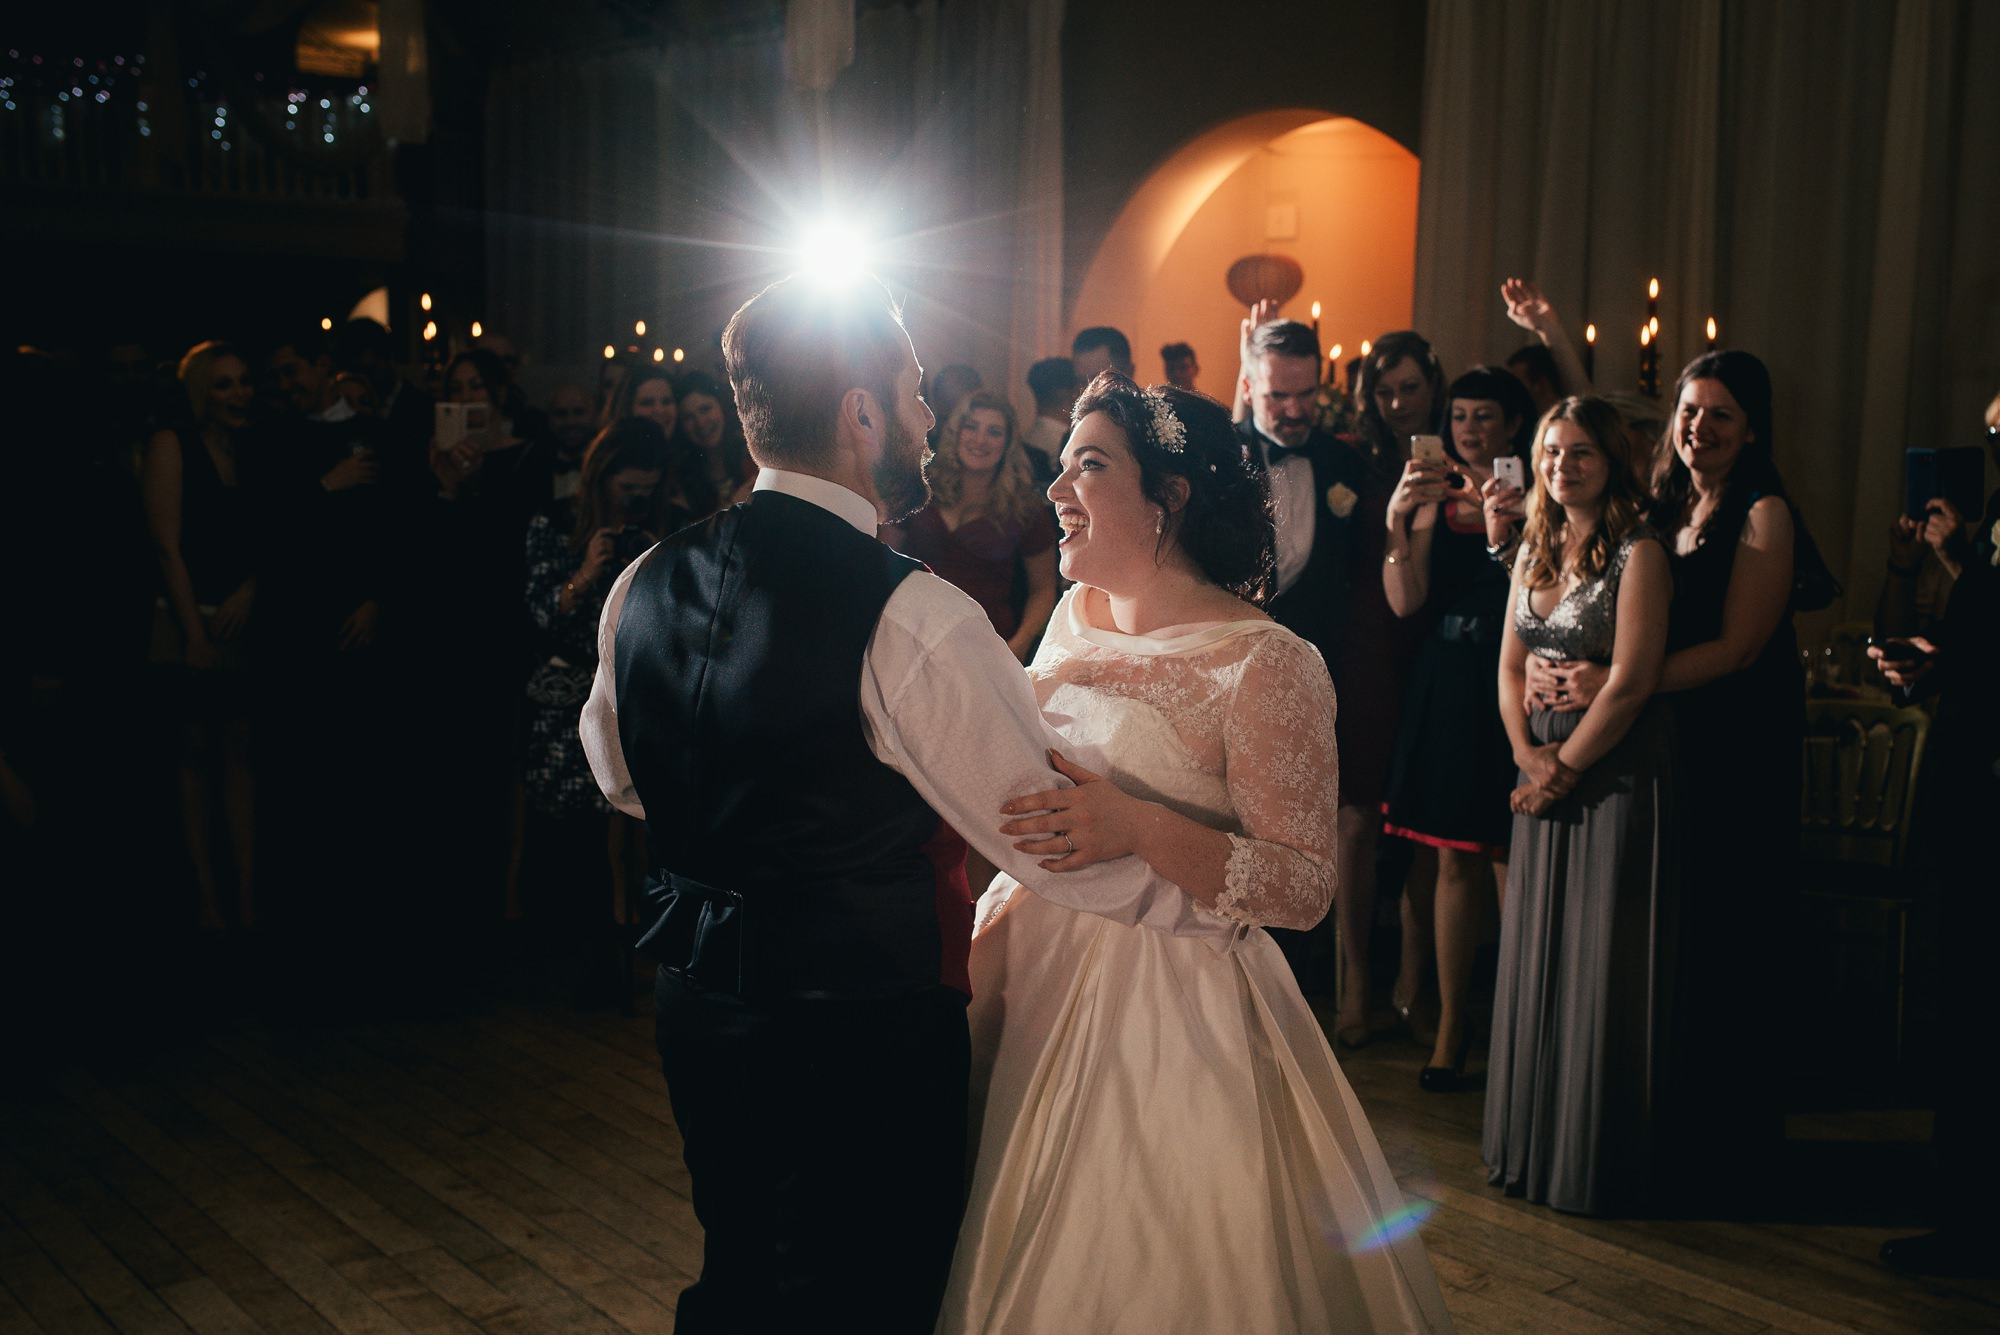 flash lit first dance wedding